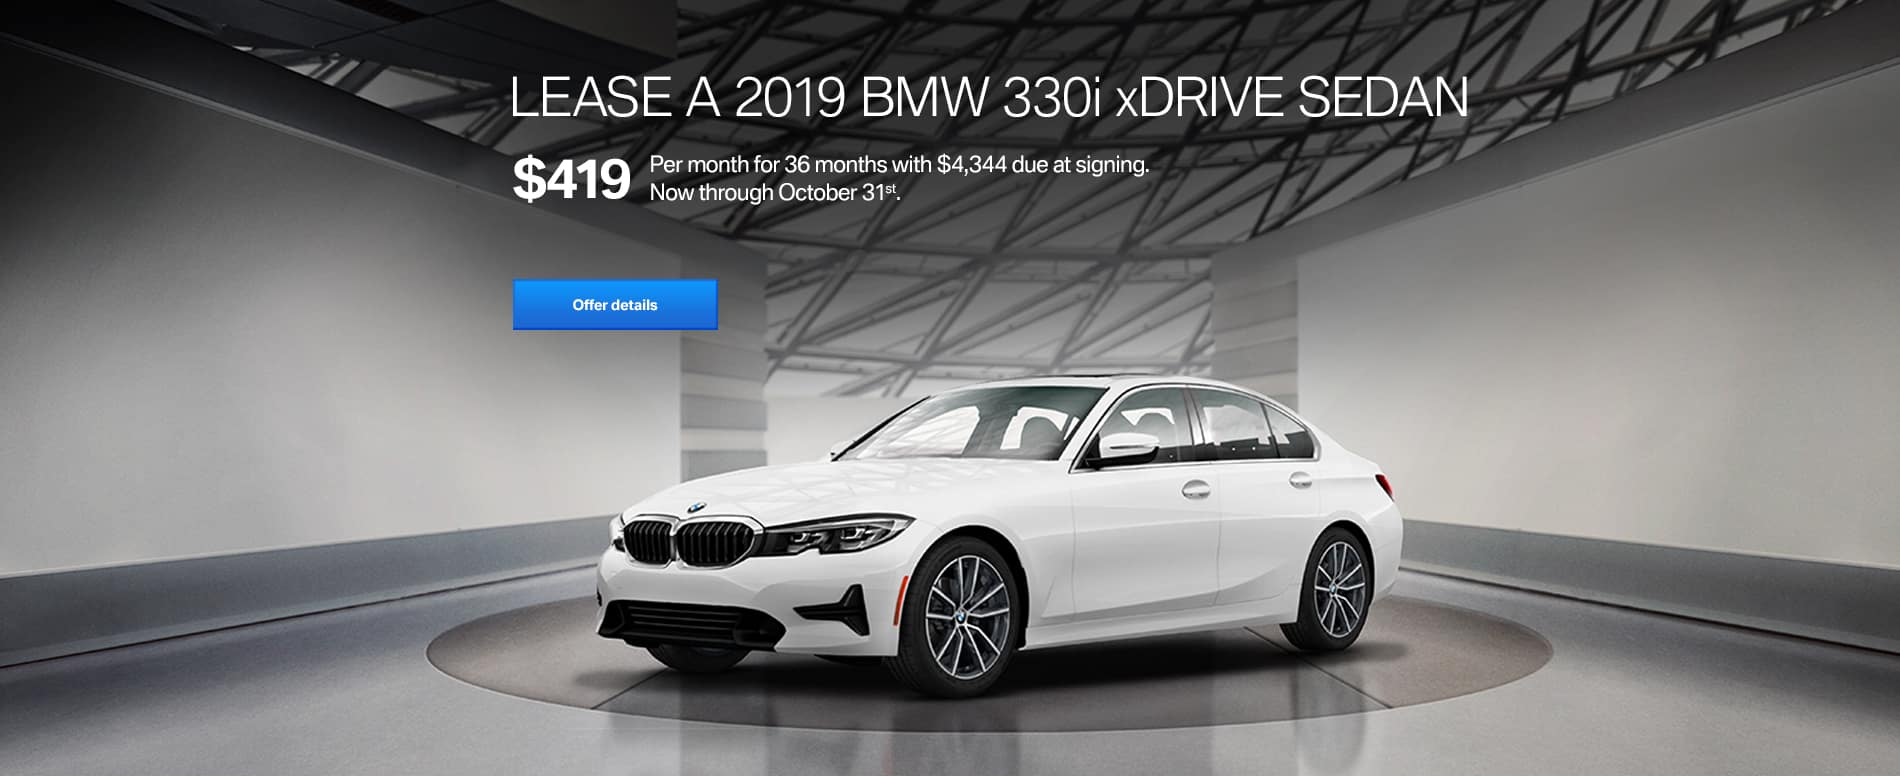 FMA2_OCT_PUSH_BMW_330i_xDrive_419